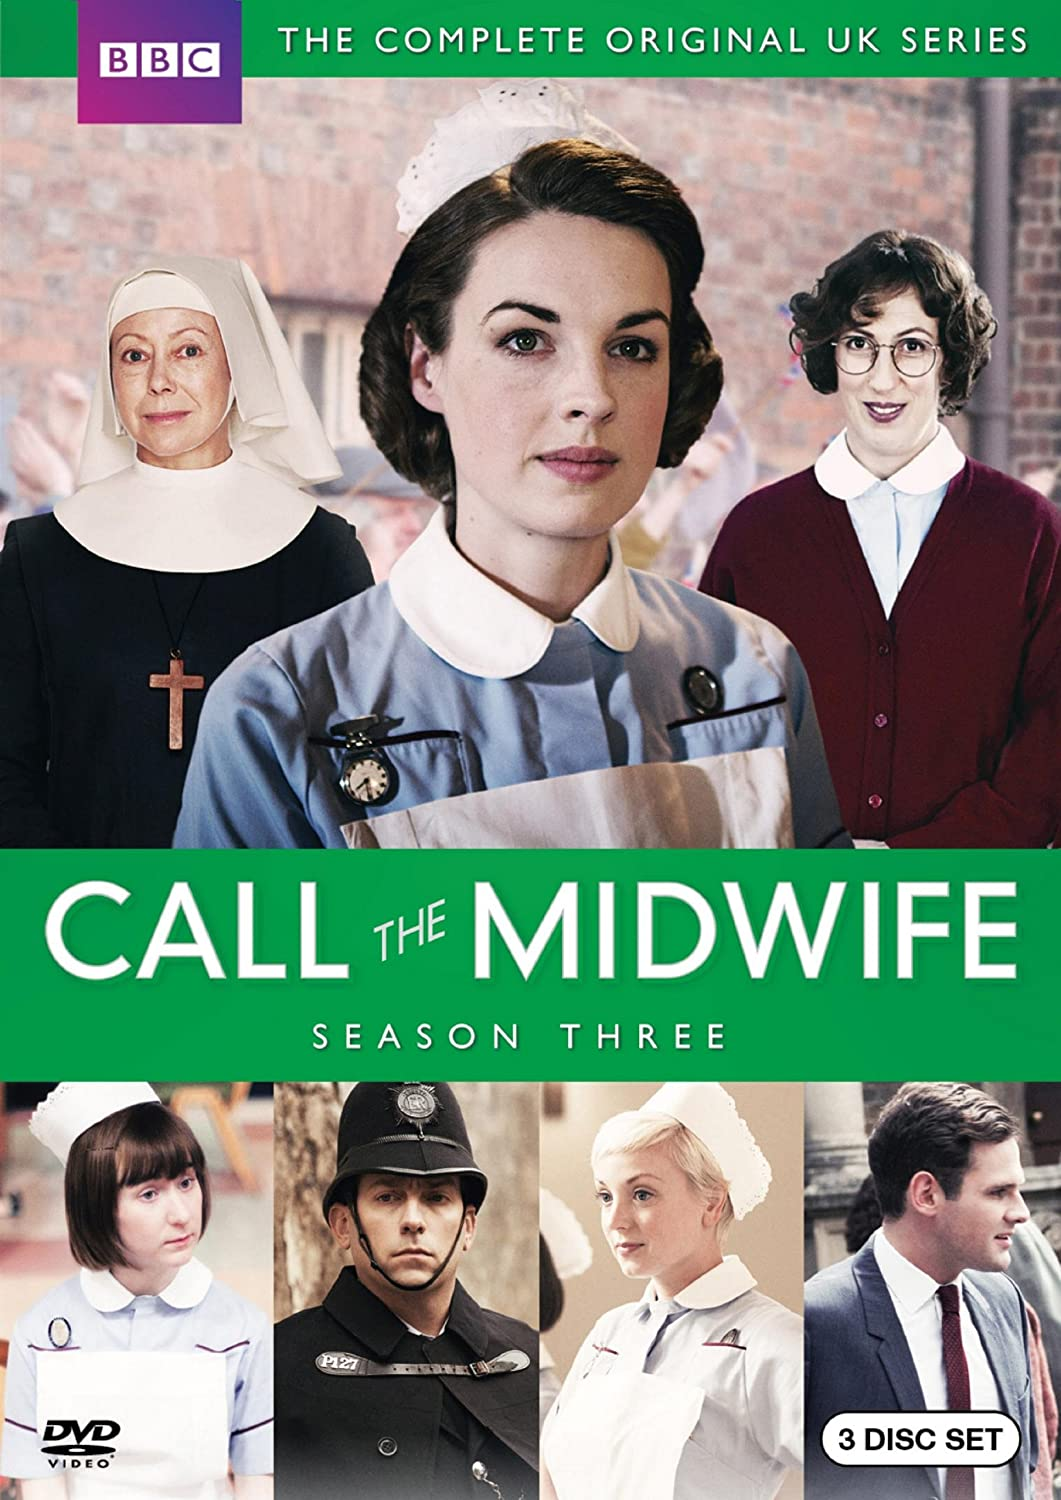 call the midwife christmas special 2014